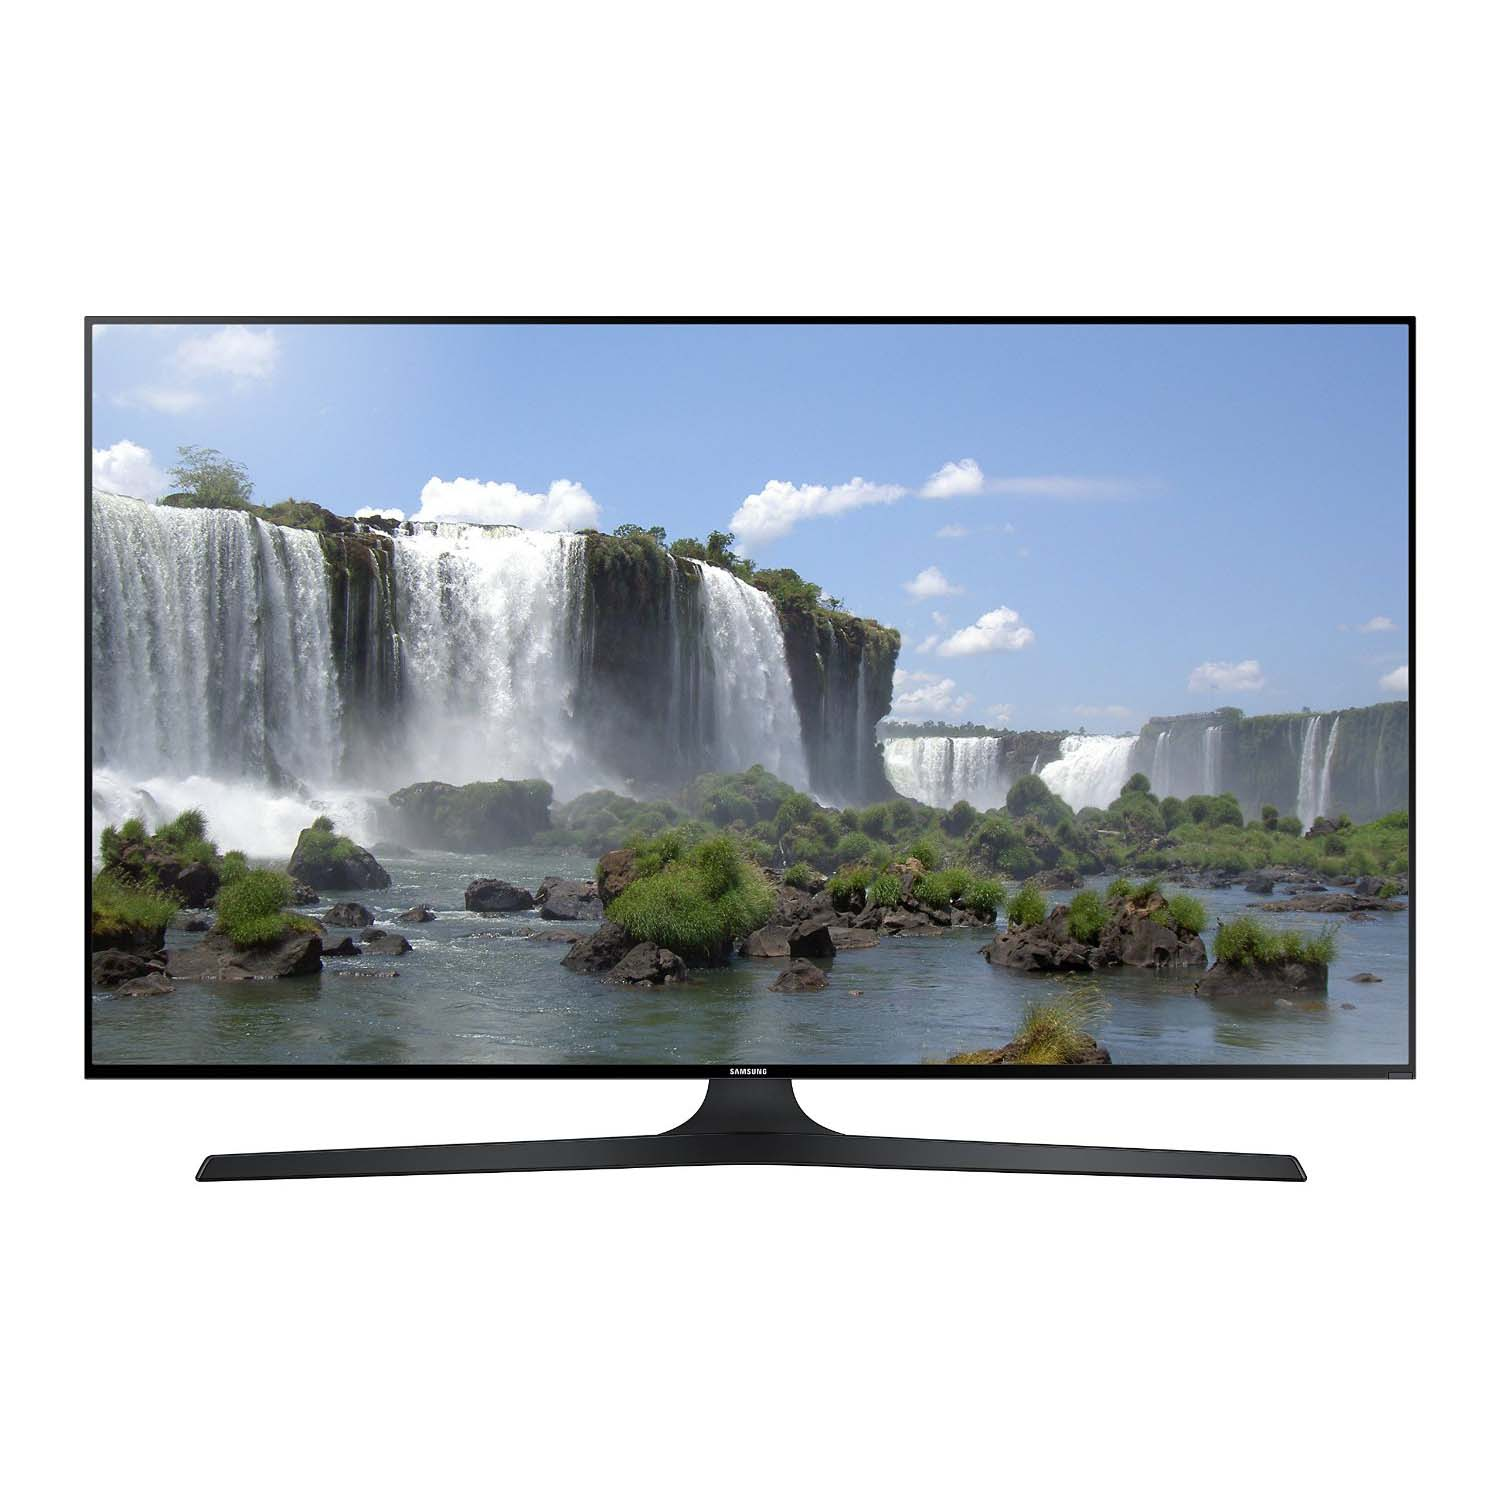 Samsung UN60J6300 60-Inch 1080p Smart LED TV (2015 Model) *관부가세 별도*